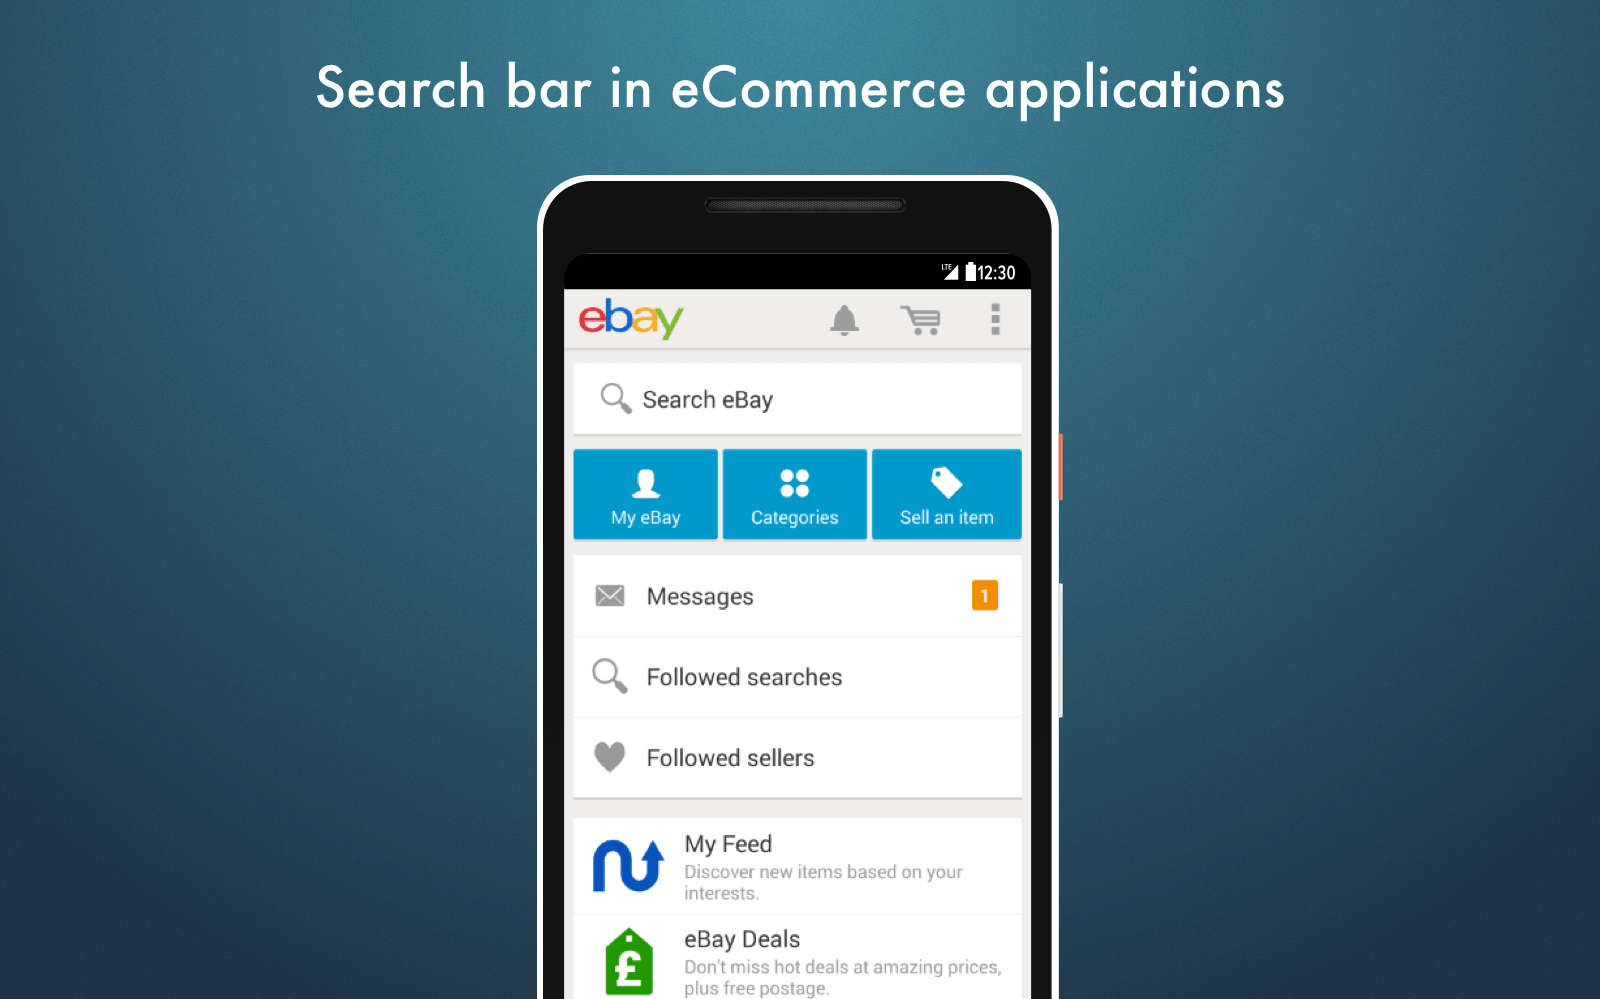 Ecommerce mobile tips: Search bar